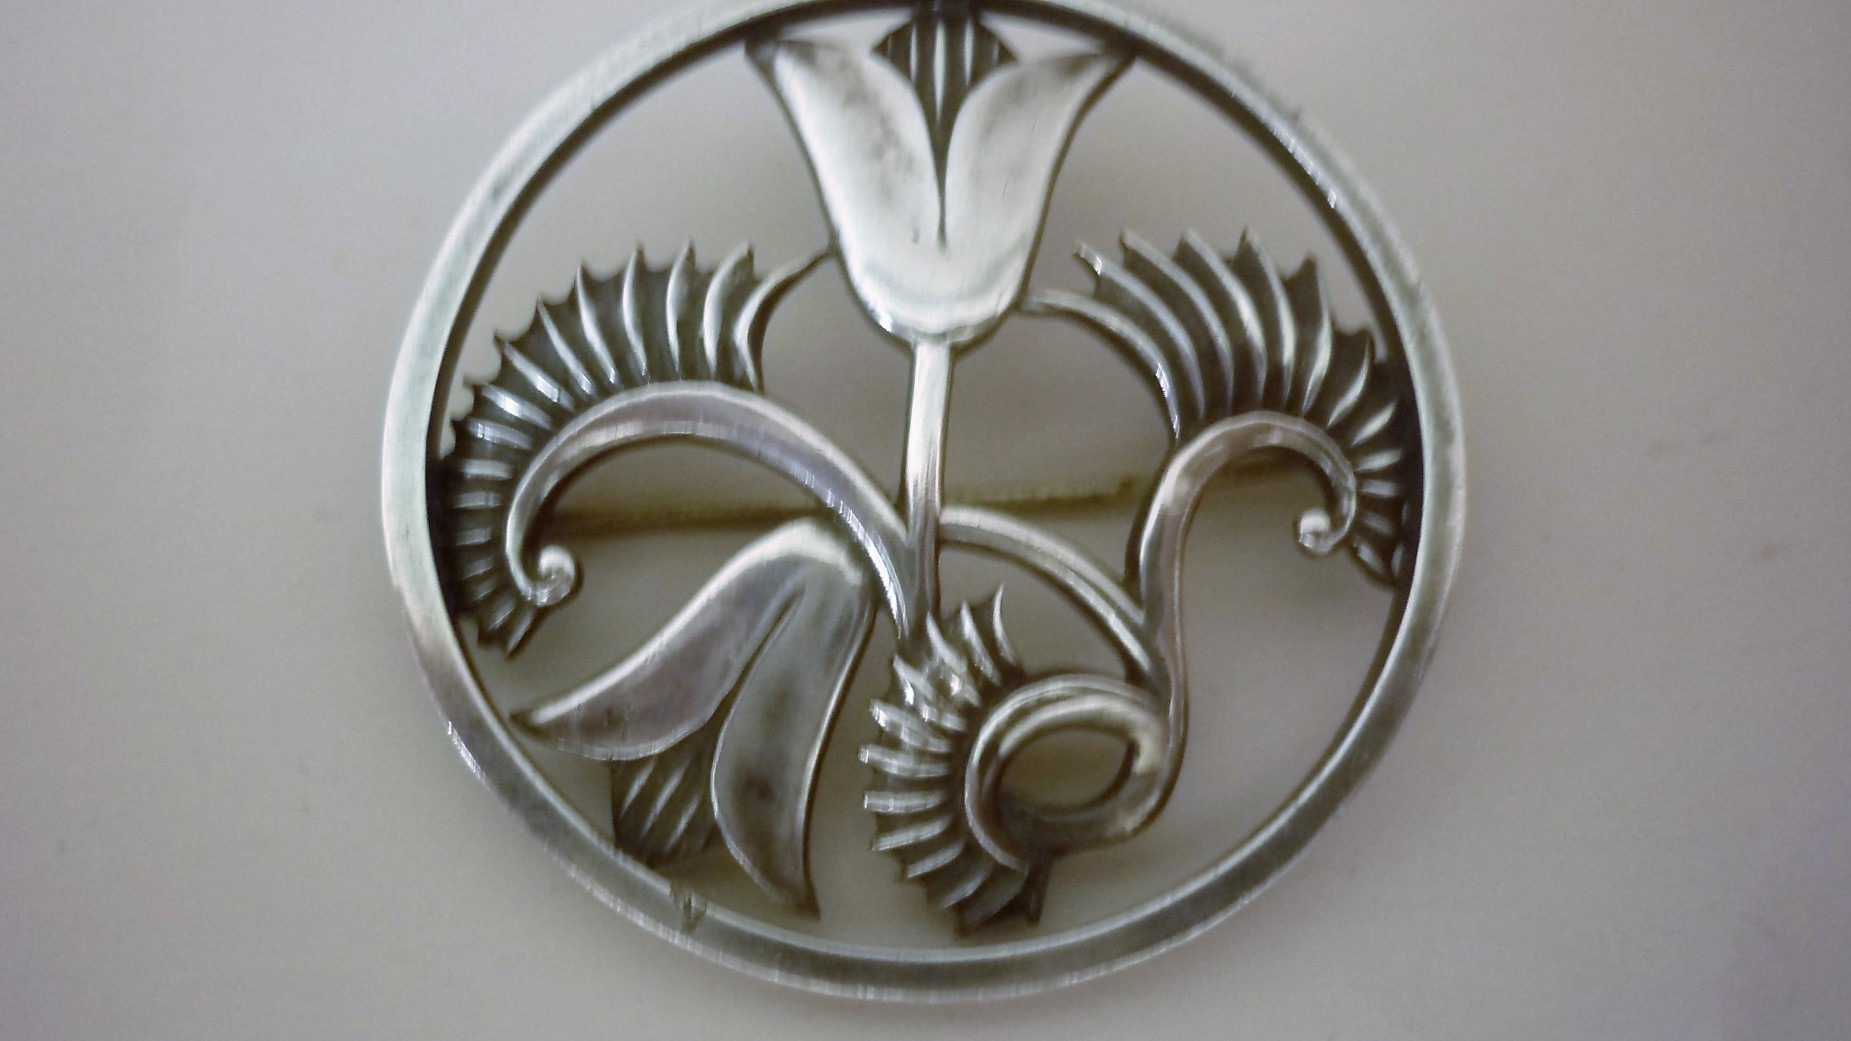 Modernist Hallmarked Silver Brooch Designed by Geoffrey Bellamy for George Tarratt